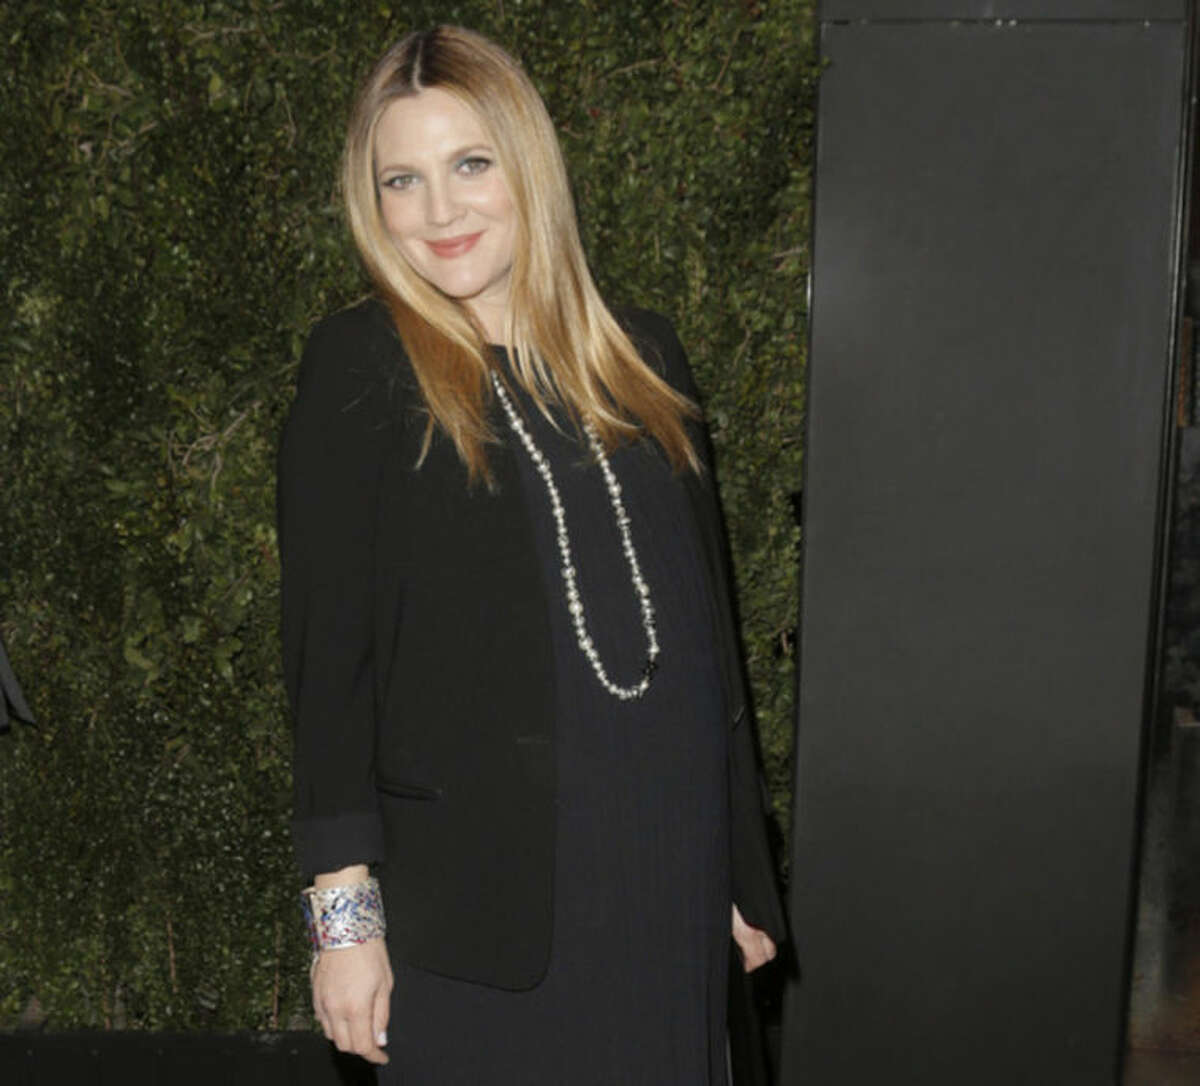 """FILE - In this Jan. 14, 2014 file photo, Drew Barrymore arrives at the Chanel Dinner celebrating the release of Drew Barrymore's new book """"Find It In Everything"""" at the Chanel Boutique in Beverly Hills, Calif. The 39-year-old, who is expecting her second daughter with husband Will Kopelman any day now, is joining other famous families at Safe Kids Day, an educational playdate that raises funds and awareness of preventable childhood injuries. Gwen Stefani and Gavin Rossdale, Mark Wahlberg, Piers Morgan, Kelsey Grammer and Ciara are among the celebrities expected at the Los Angeles event Saturday, April 5, 2014. (Photo by Todd Williamson/Invision/AP, file)"""